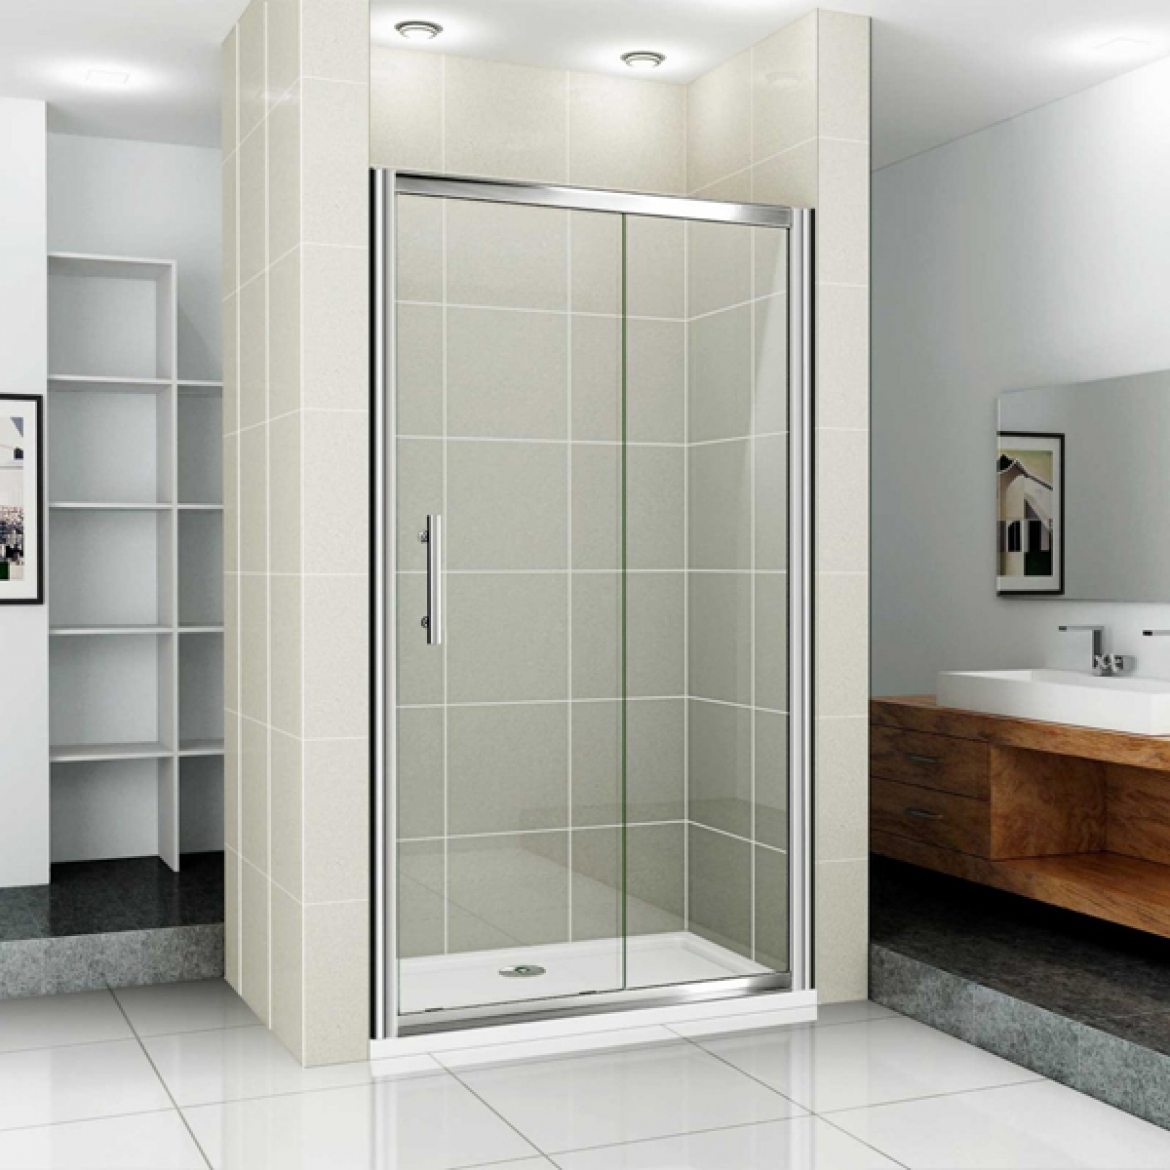 Wall to wall Shower screen [sliding door]